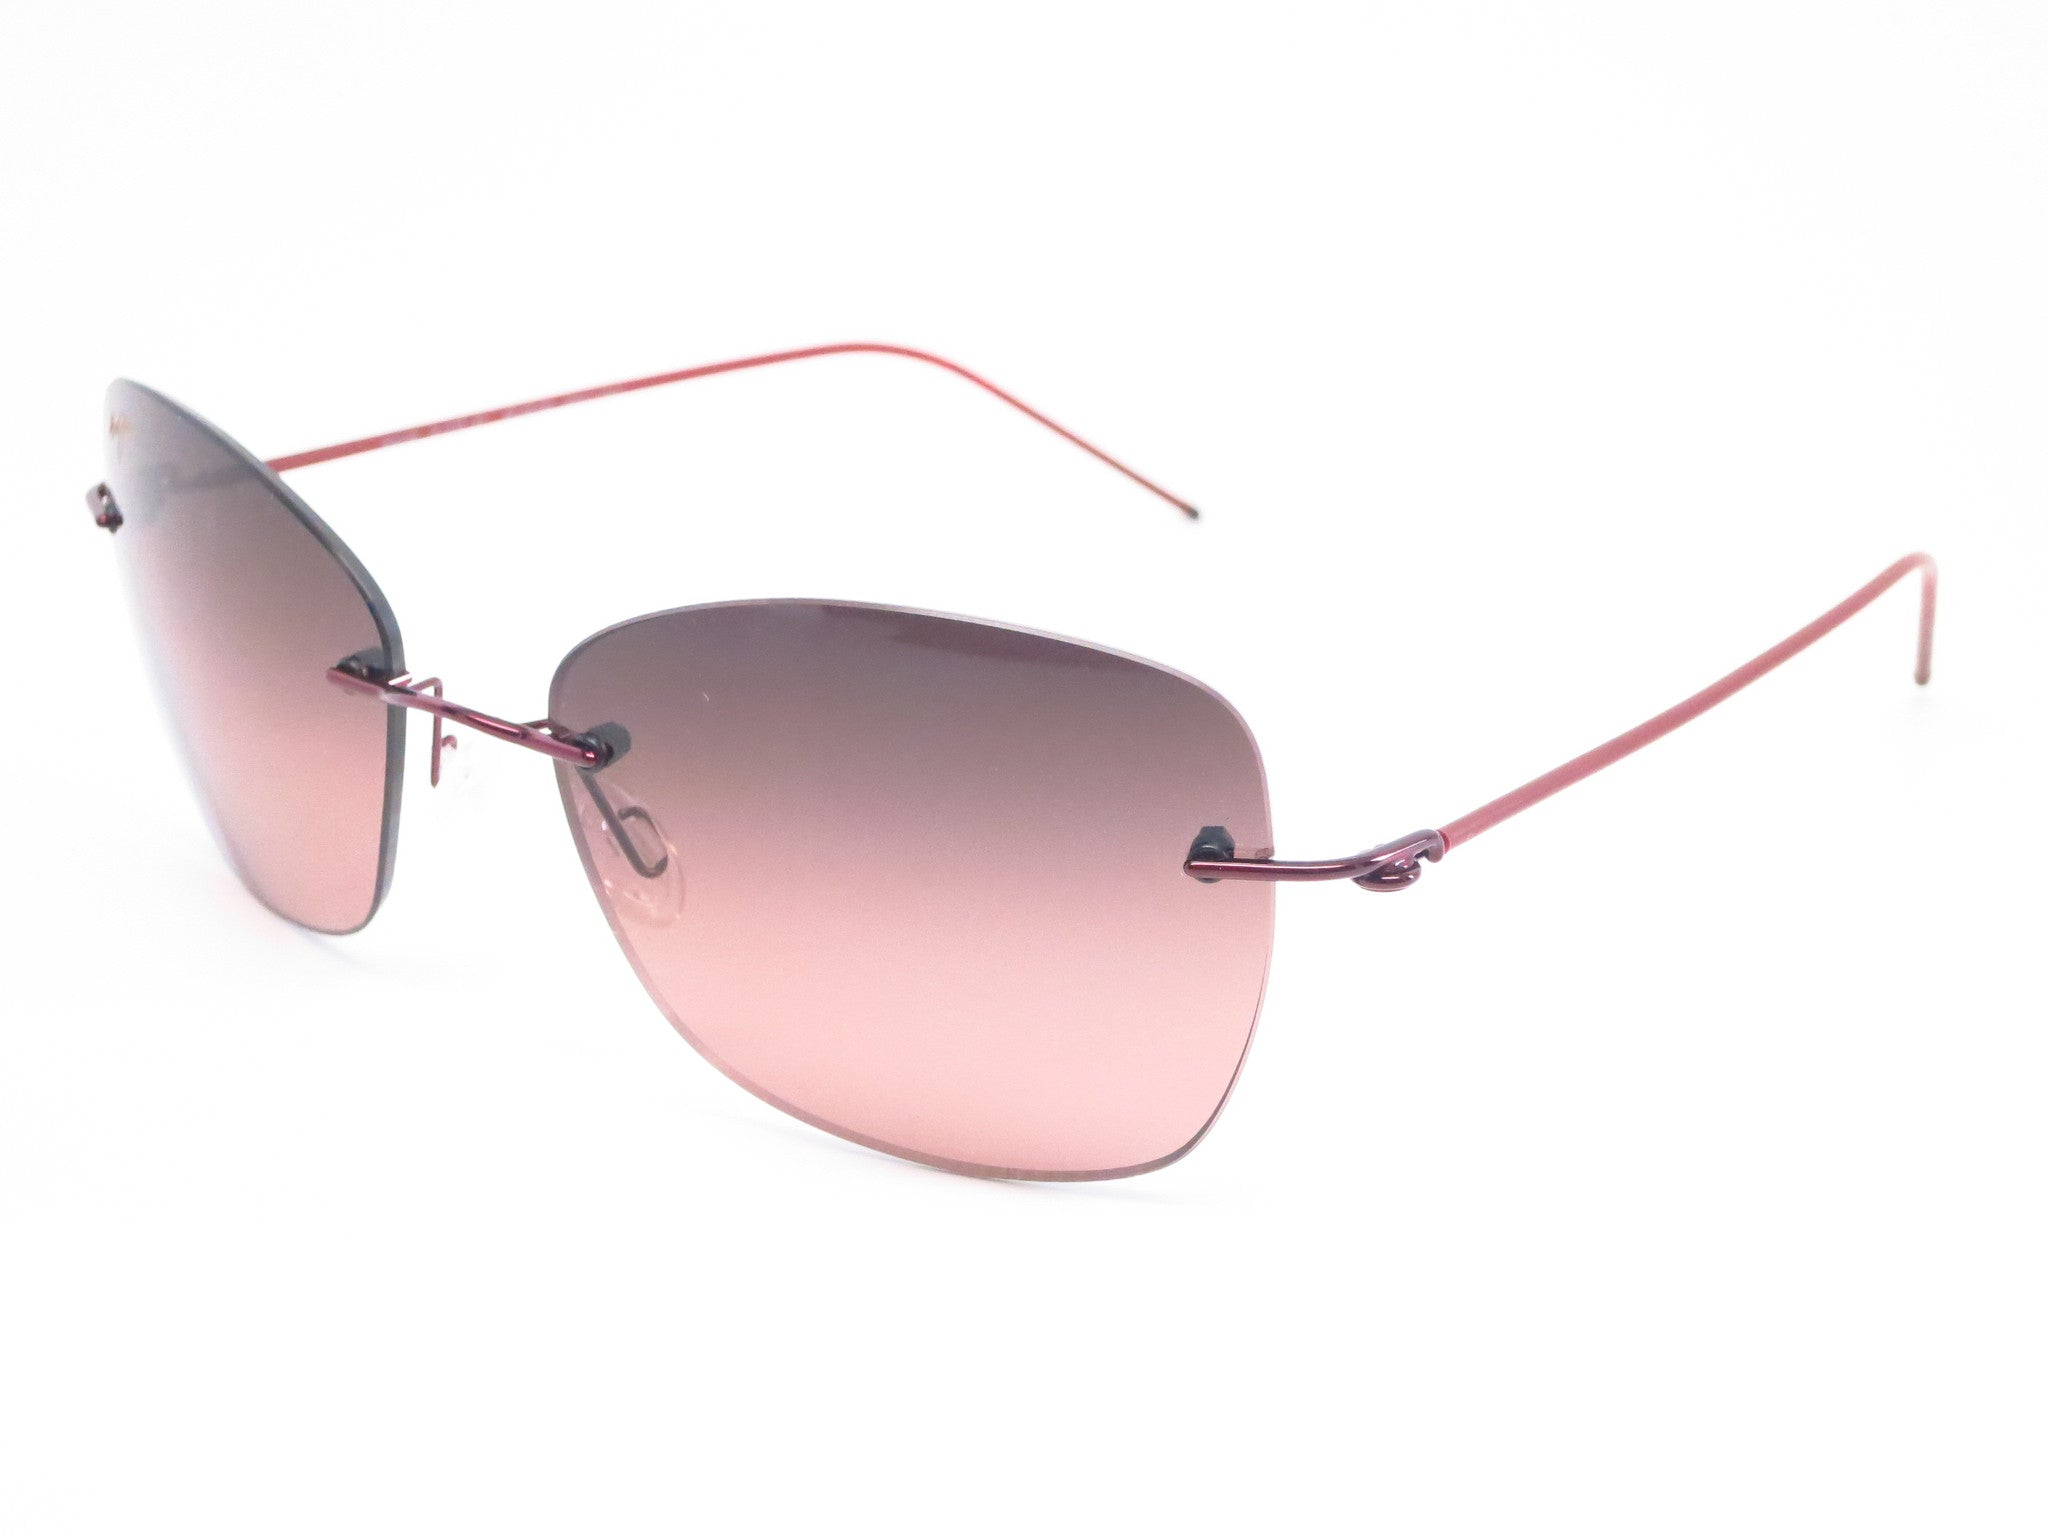 a2d1cf1da68a Maui Jim Apapane MJ RS717-07 Burgandy/Red sleeve Polarized Sunglasses - Eye  Heart ...